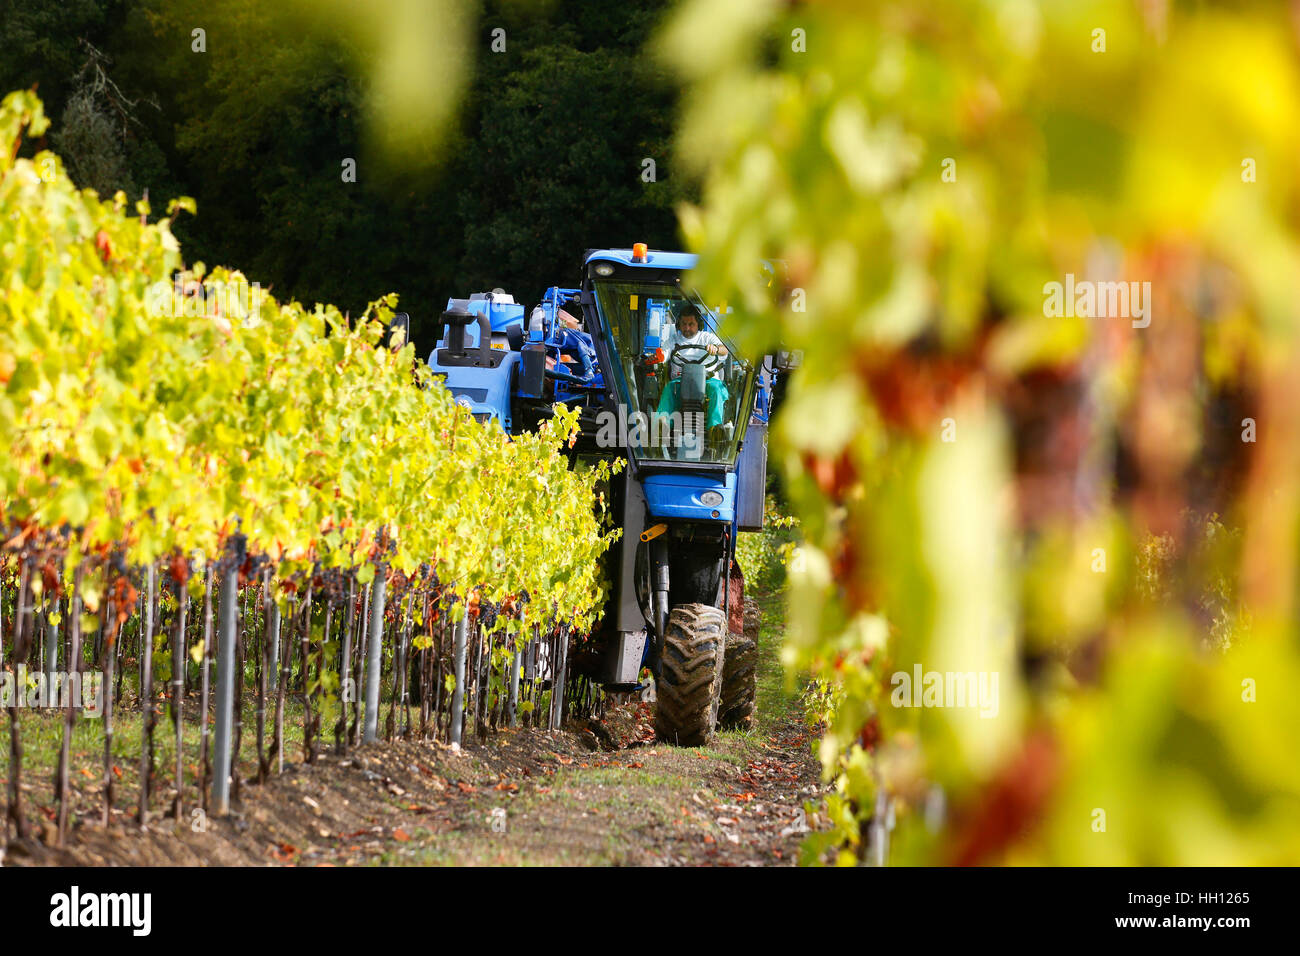 A New Holland Grape Harvester at work in the vineyards around San Casciano in Val di Pesa in Tuscany, Italy. - Stock Image